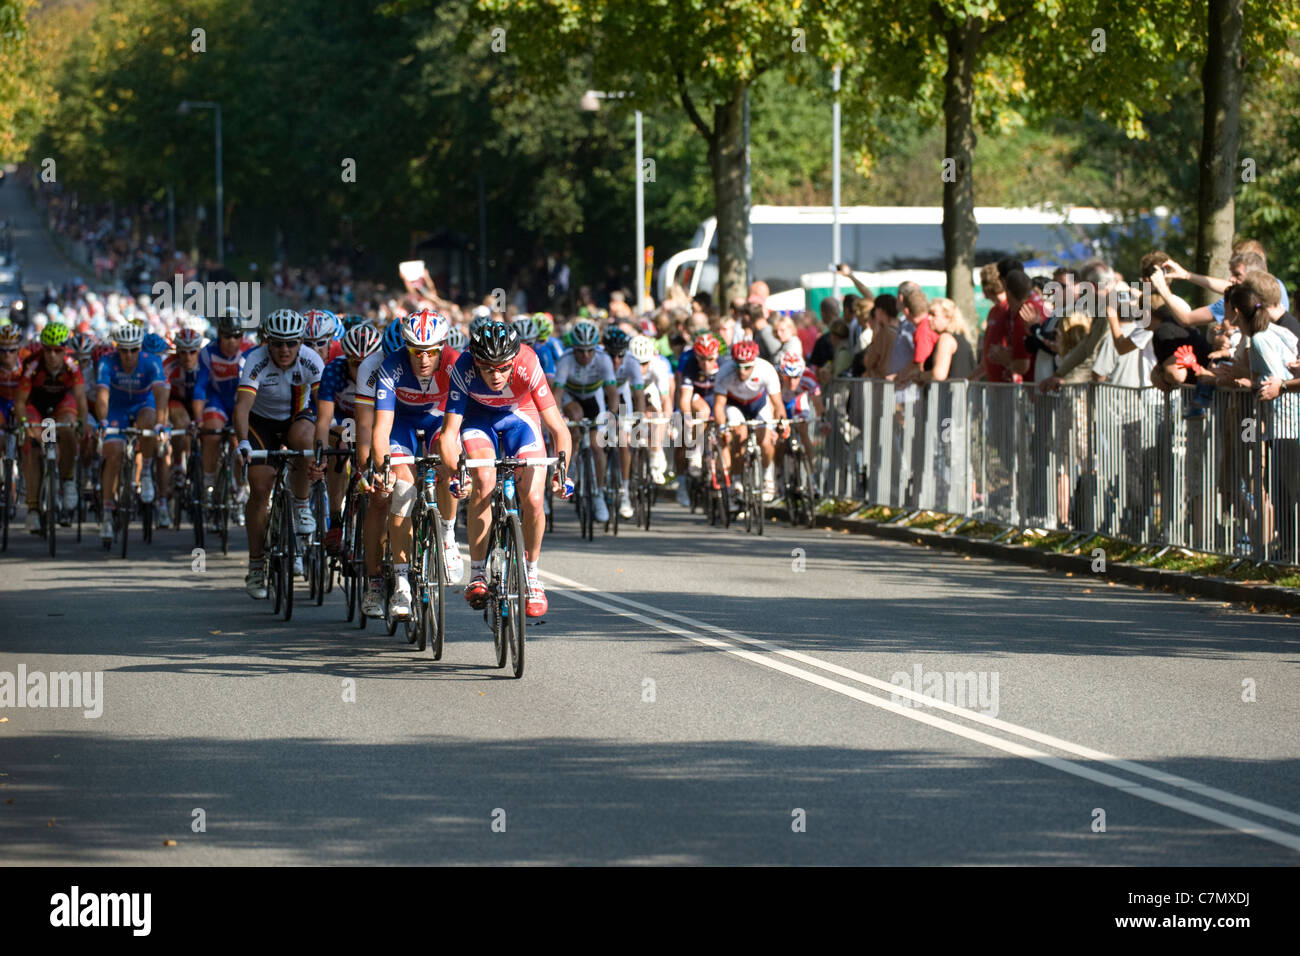 The brittish team in the front during UCI Road World Championships 2011 -  Stock Image 51bb76ed0